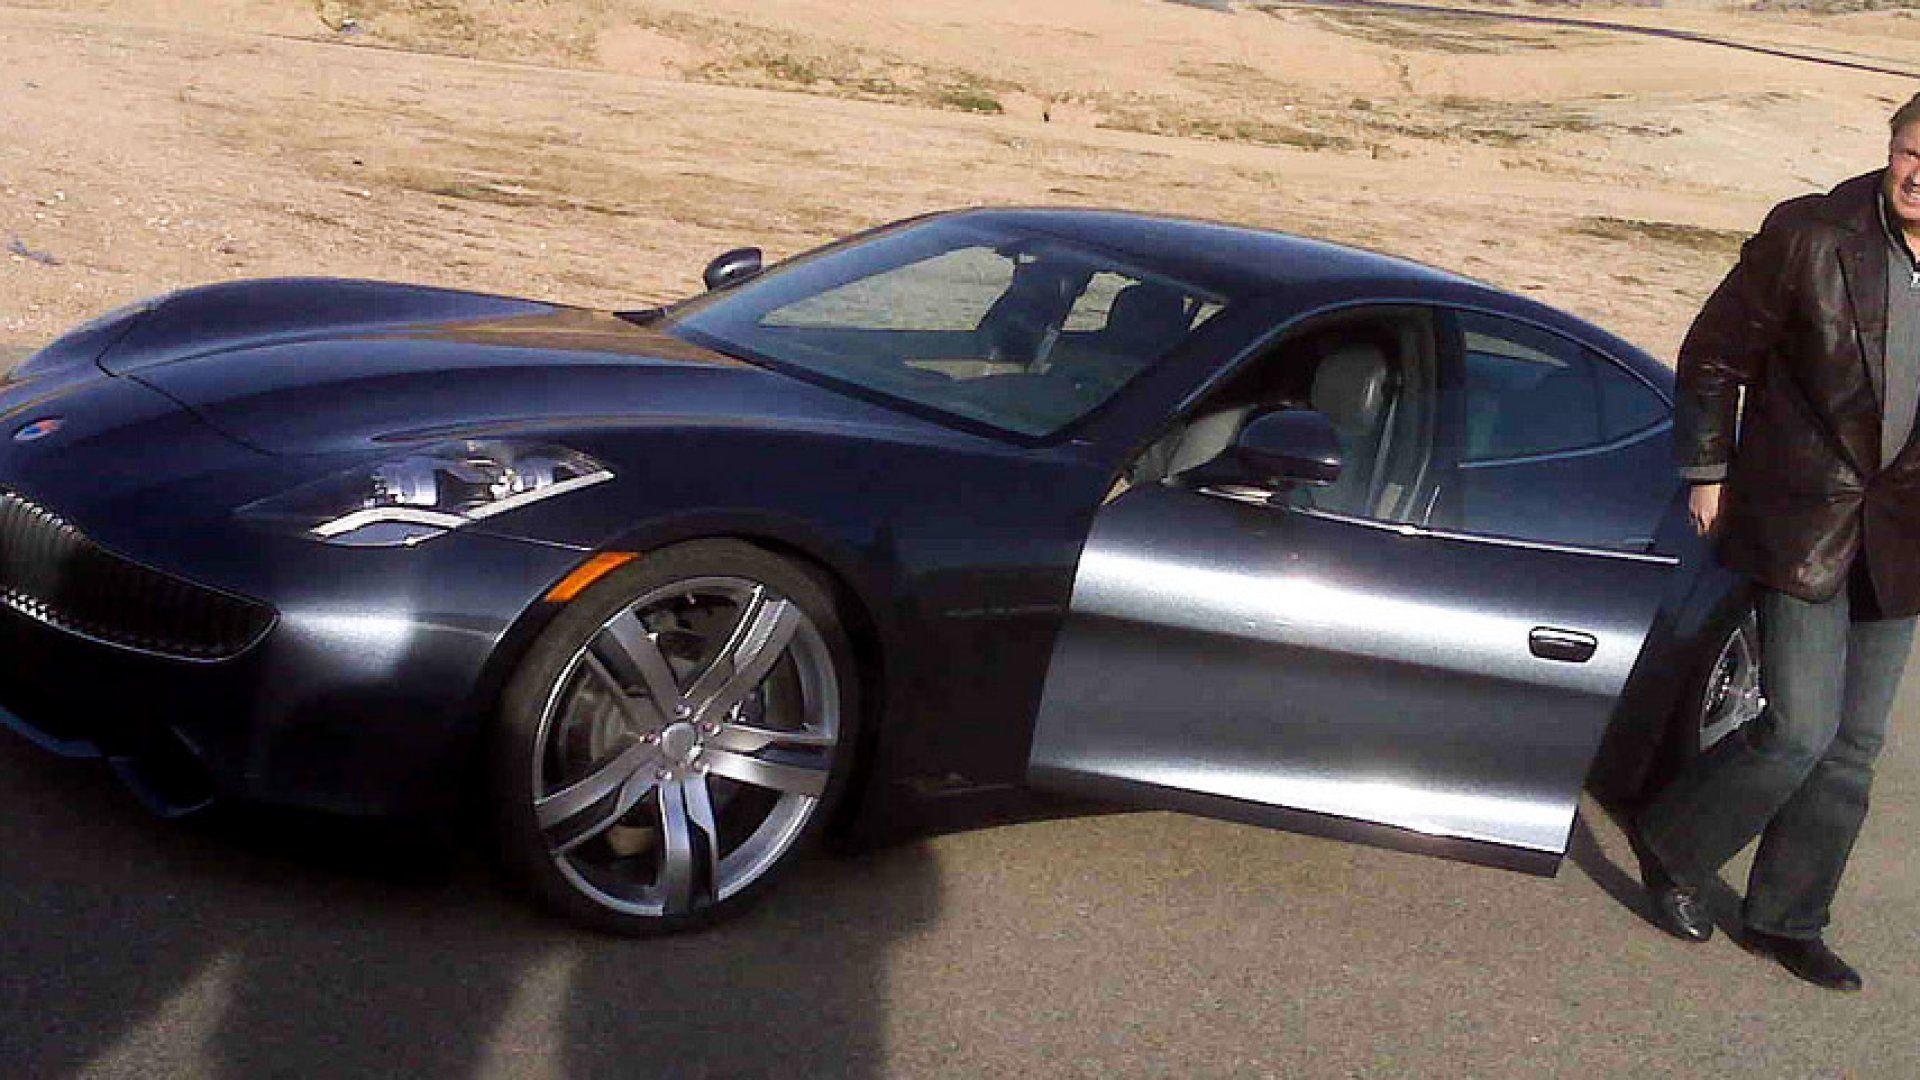 Henrik Fisker: Building a New Car Company, From Scratch